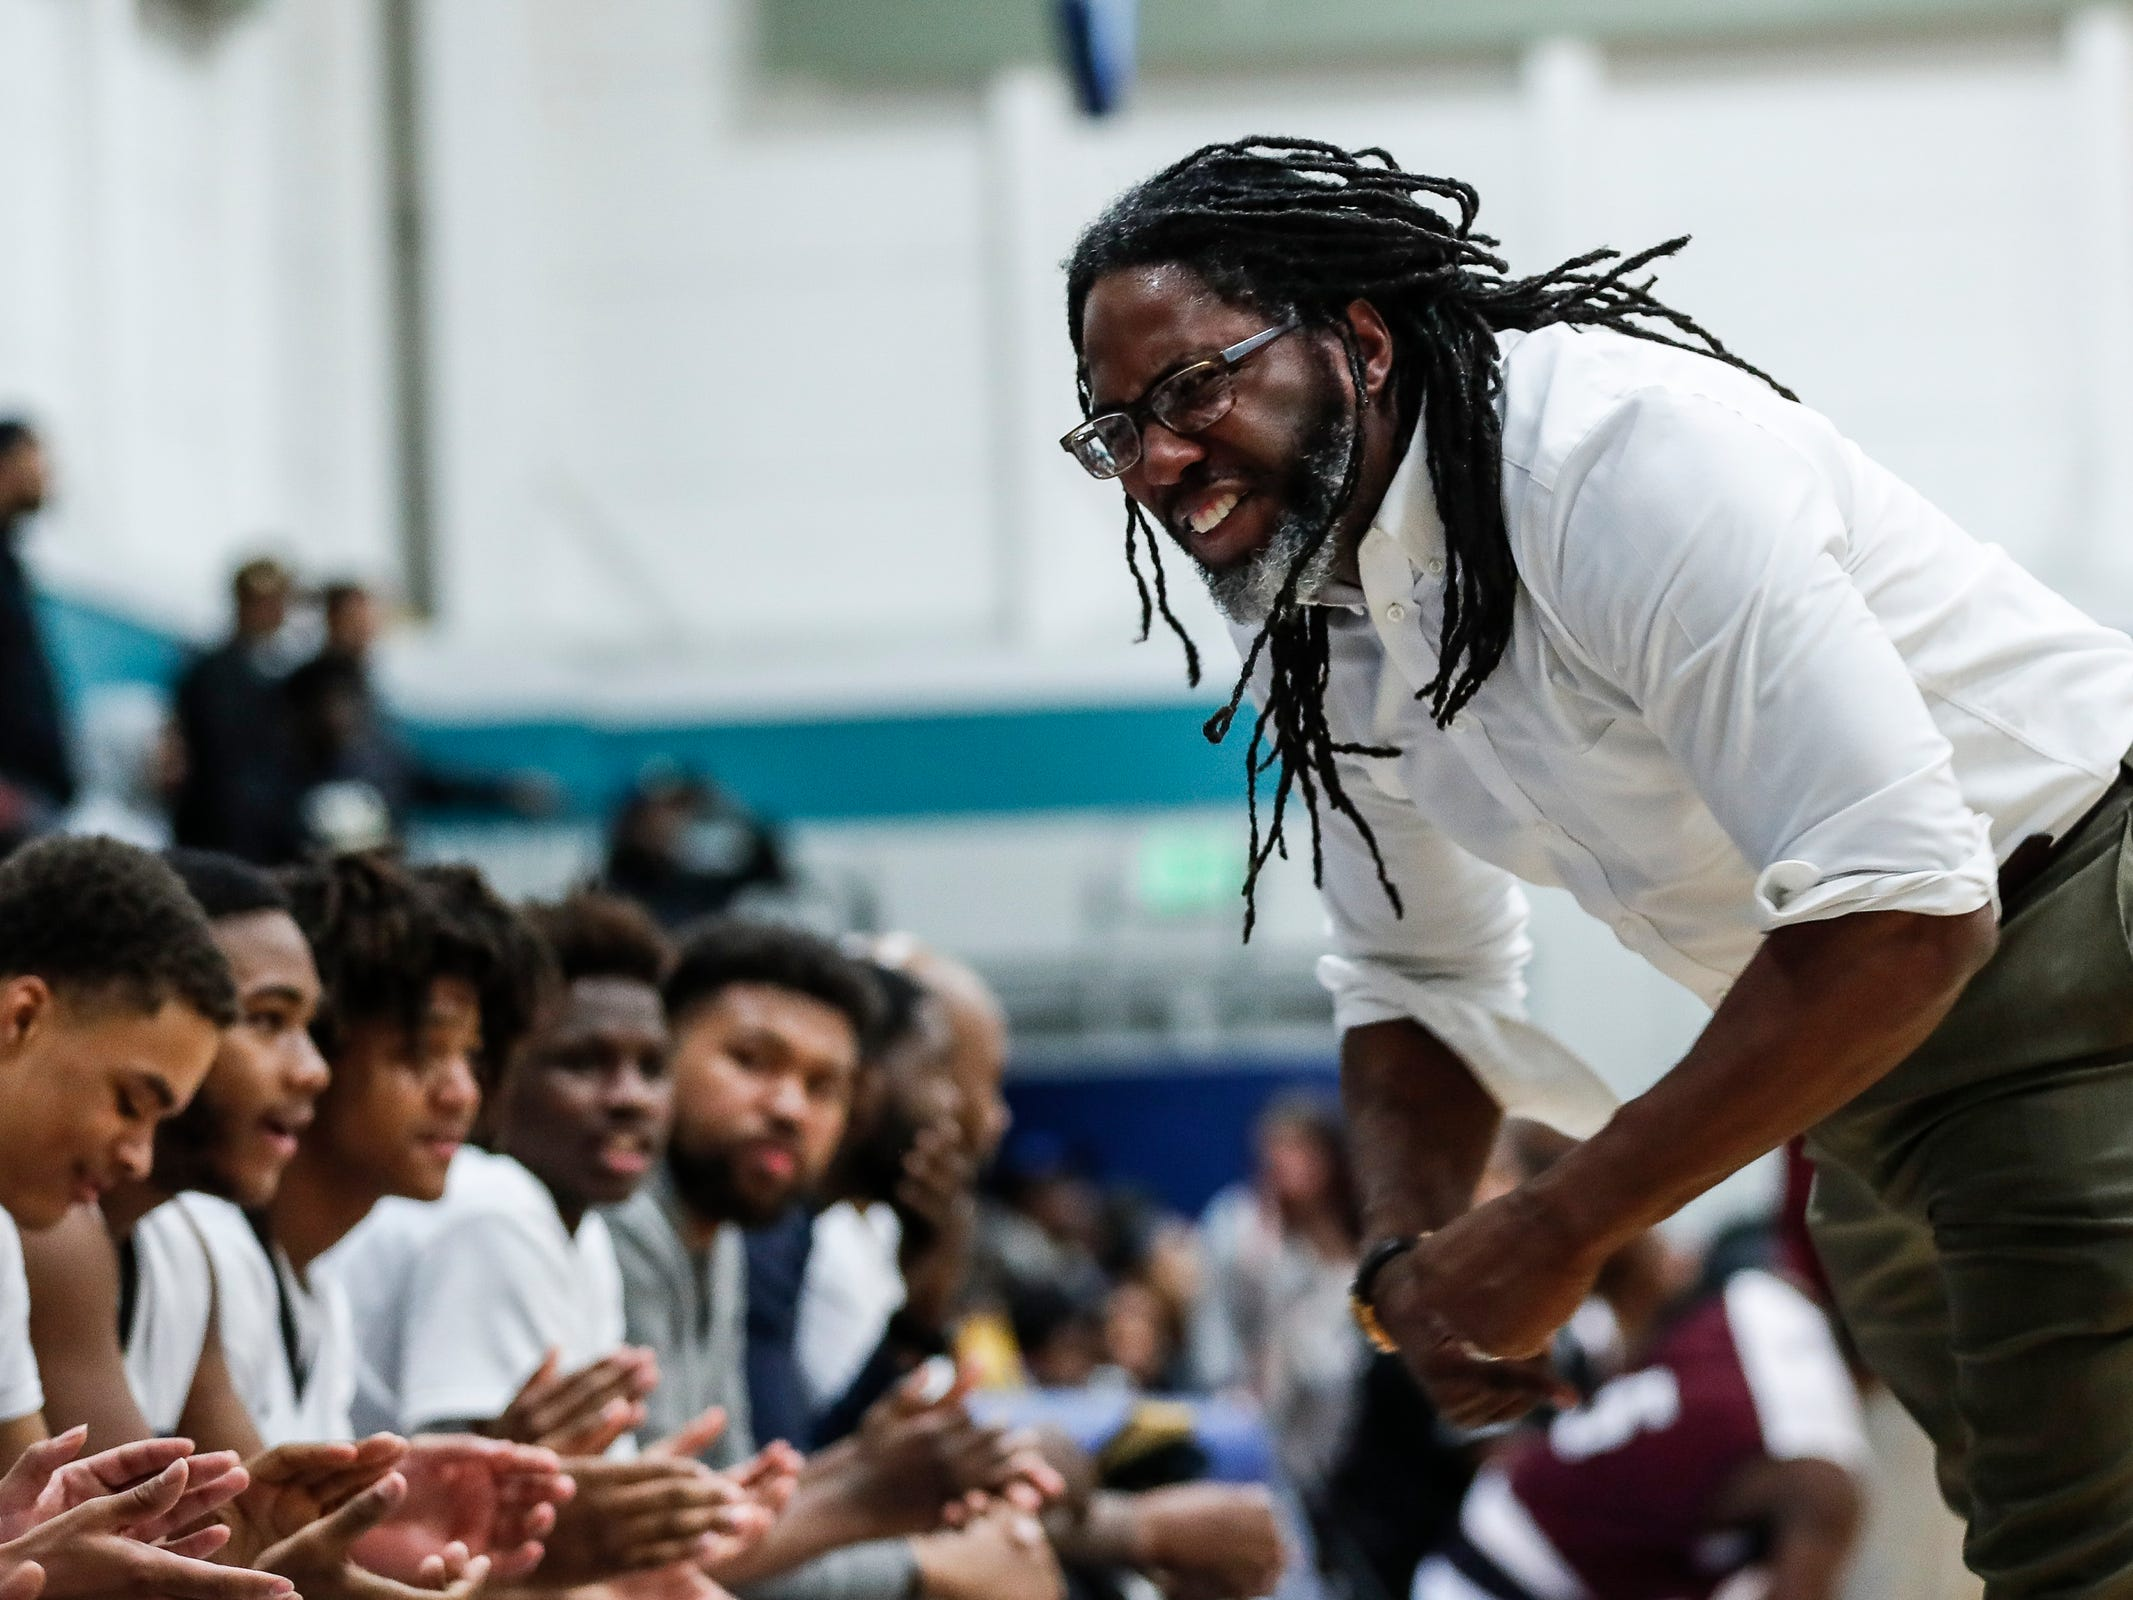 Henry Ford Academy: School for Creative Studies head basketball coach Taurean Wilson celebrates a play with players during first half at the A. Alfred Taubman Center For Design Education in Detroit, Tuesday, Jan. 8, 2019.